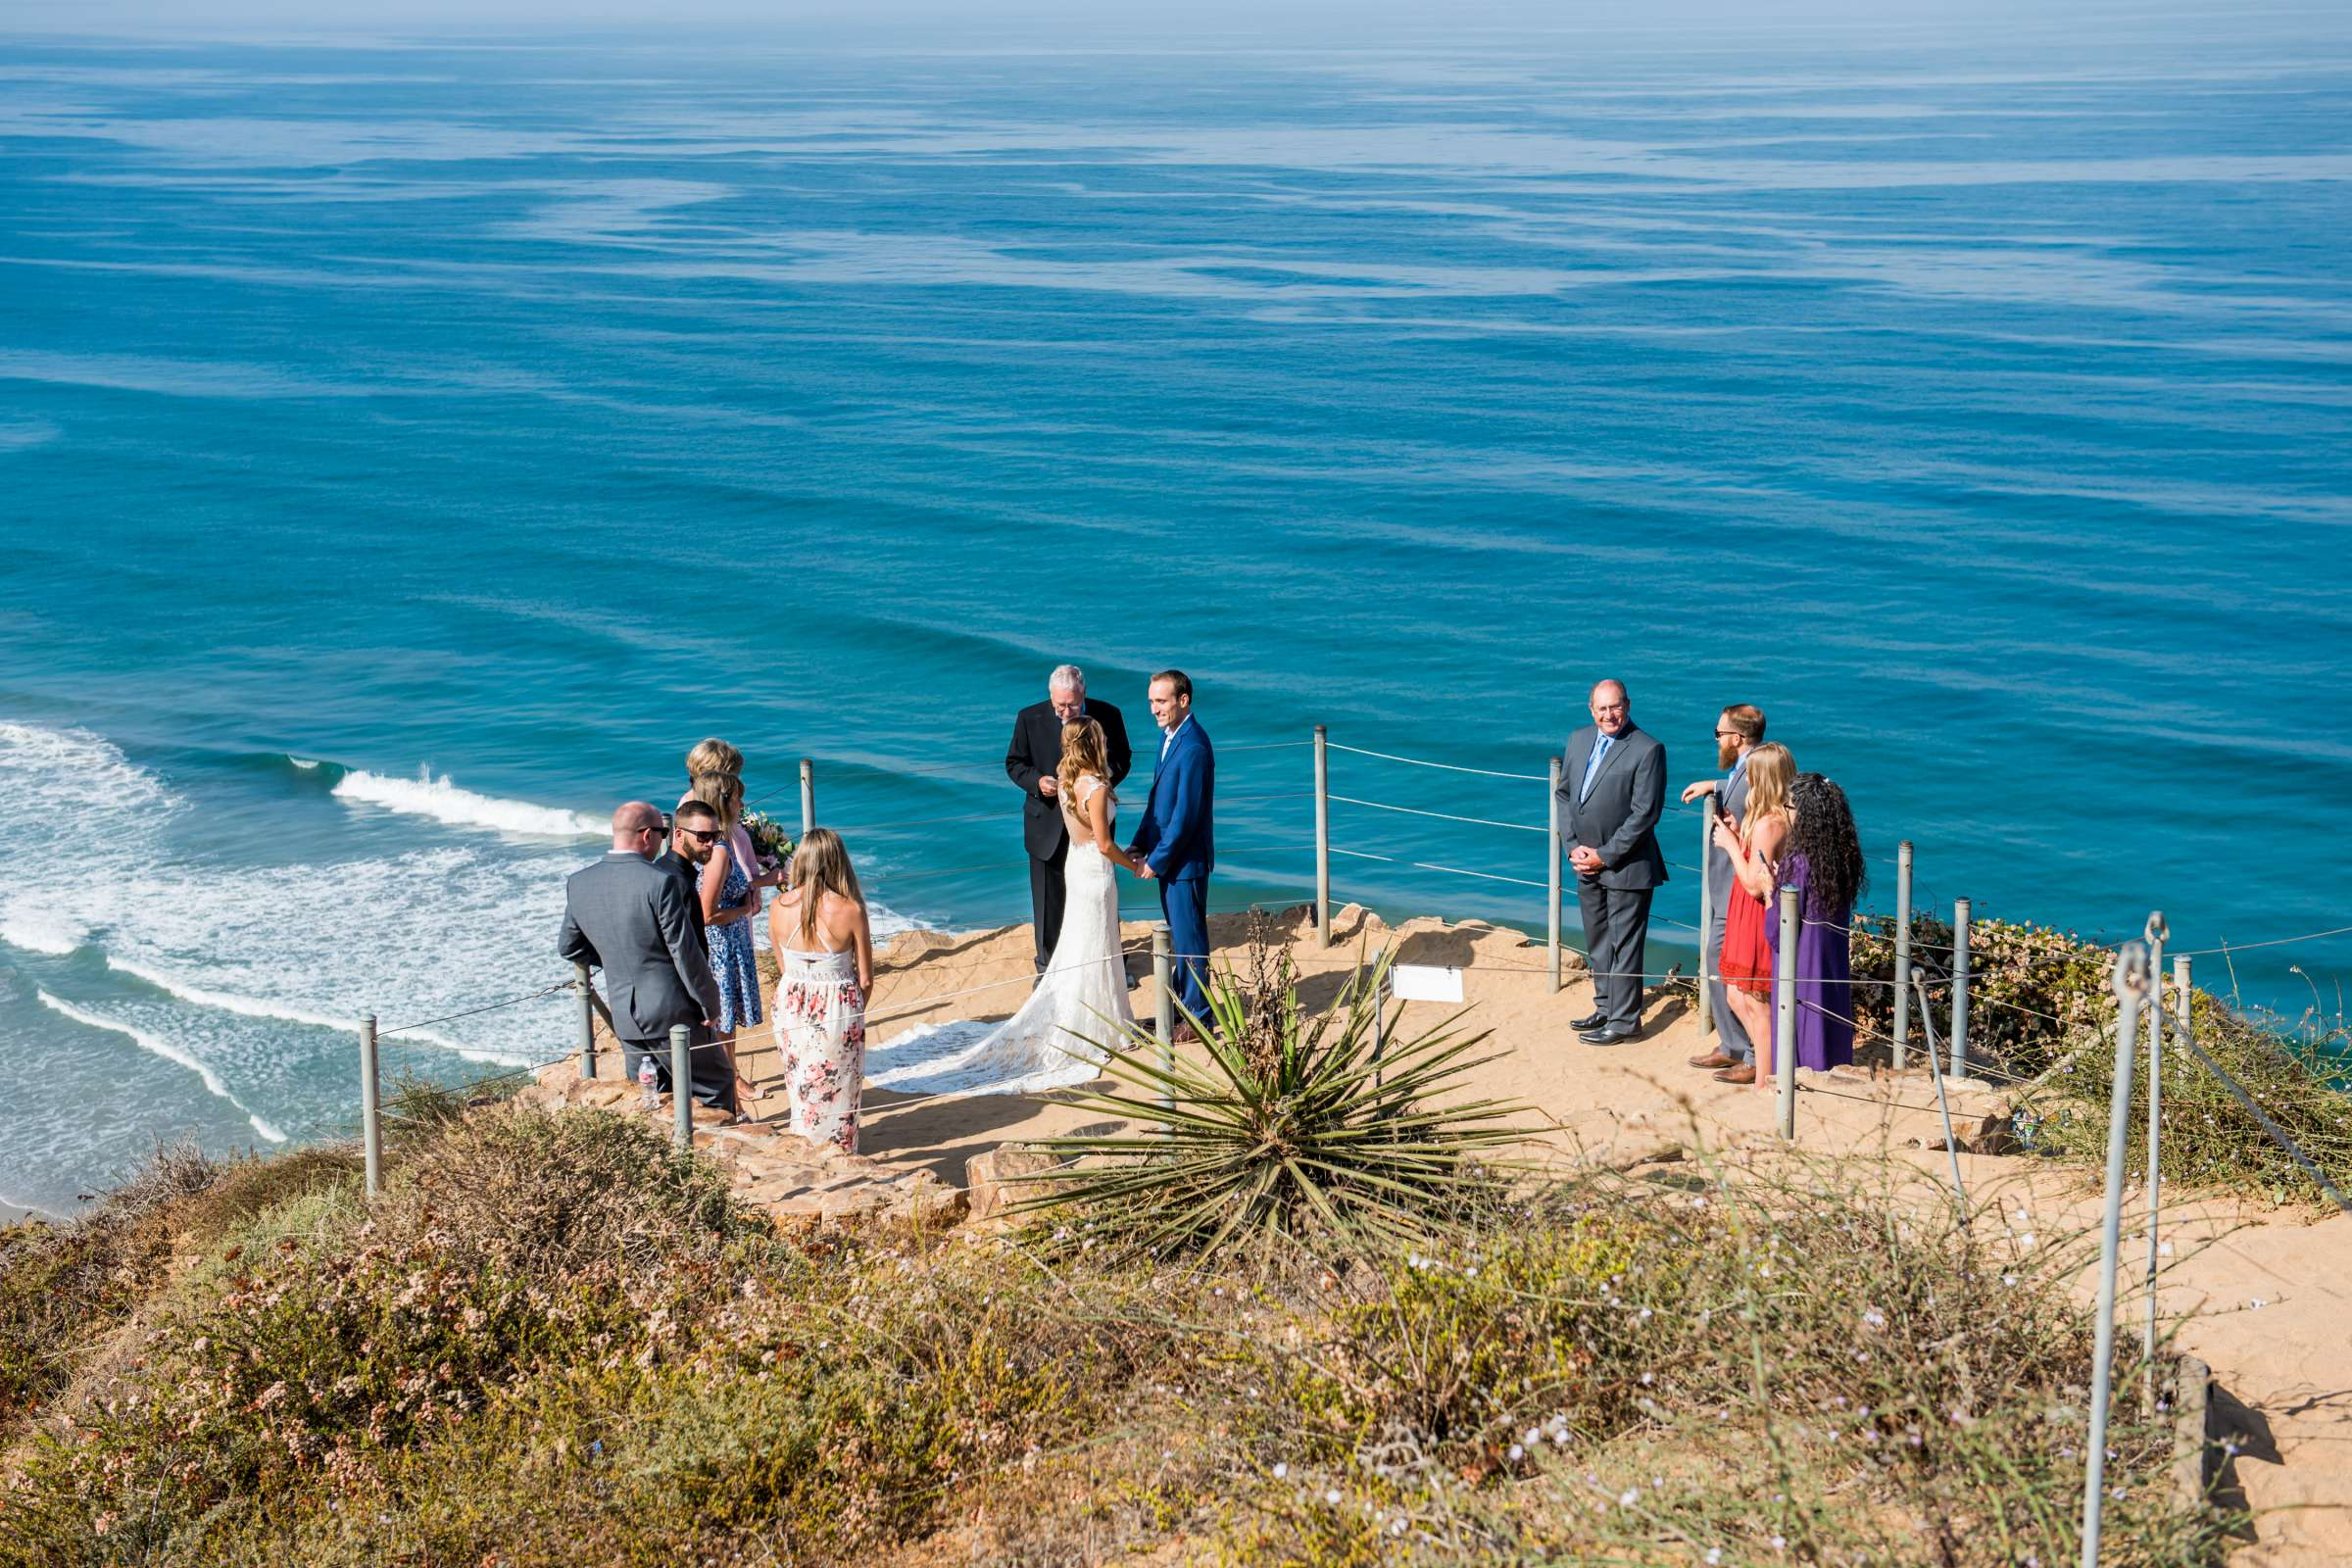 Torrey Pines State Natural Reserve Wedding, Lizzy and Justin Wedding Photo #45 by True Photography